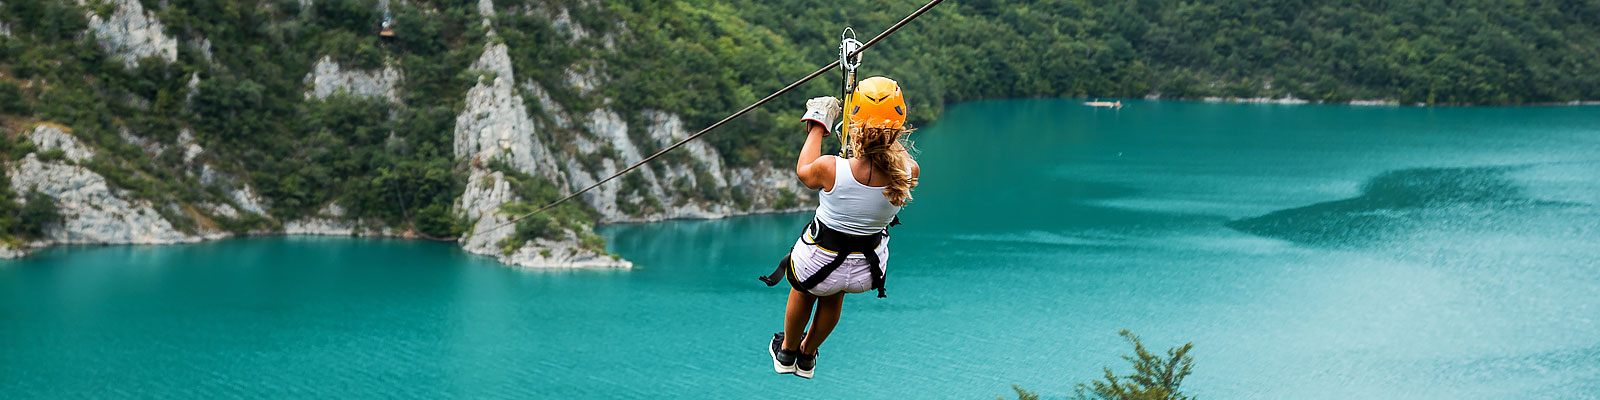 Outdoor and Adrenaline Experiences